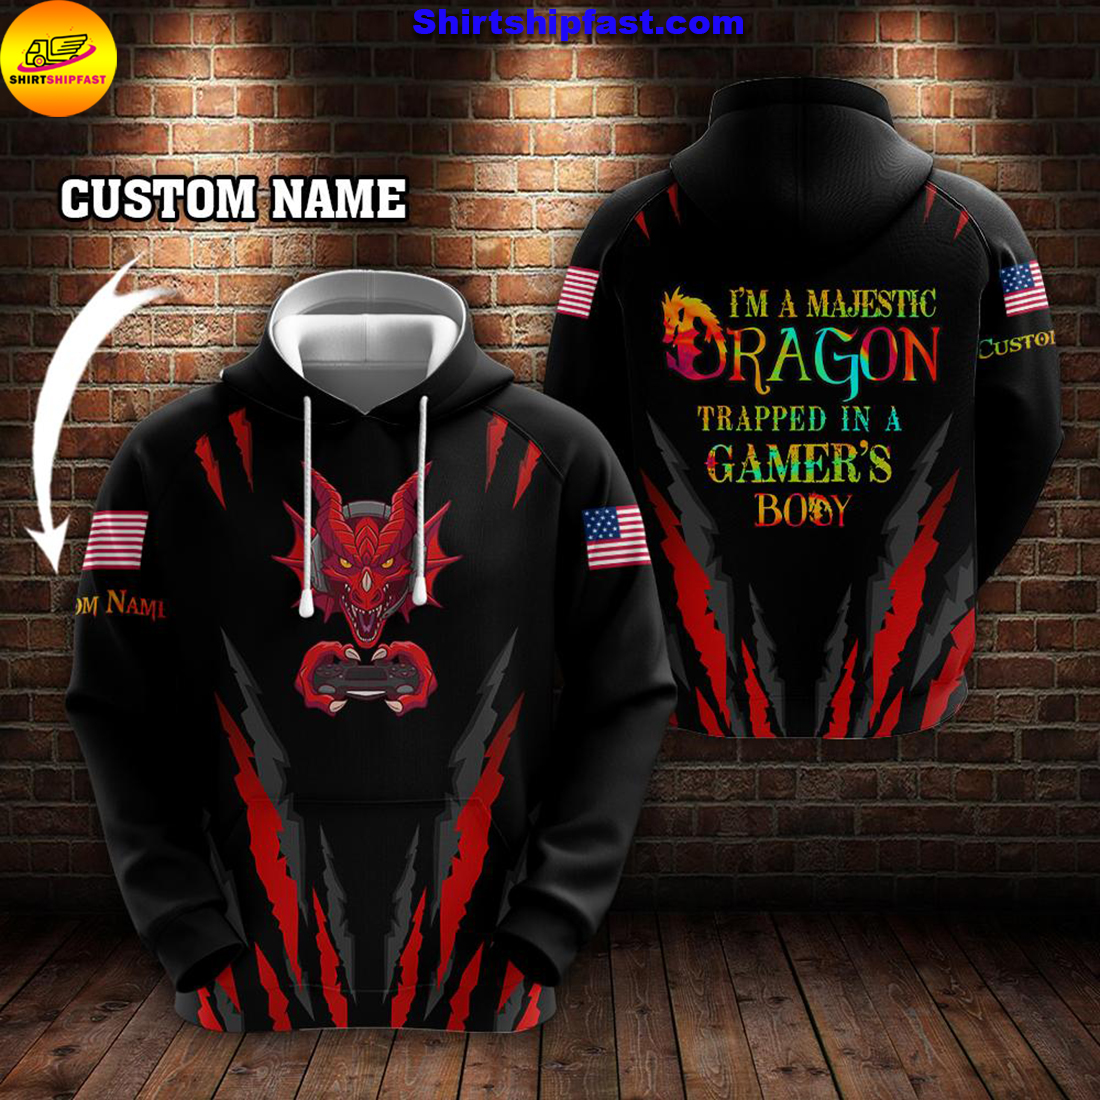 Gaming I'm a majestic dragon trapped in a gamer's body custom name 3d hoodie and zip hoodie